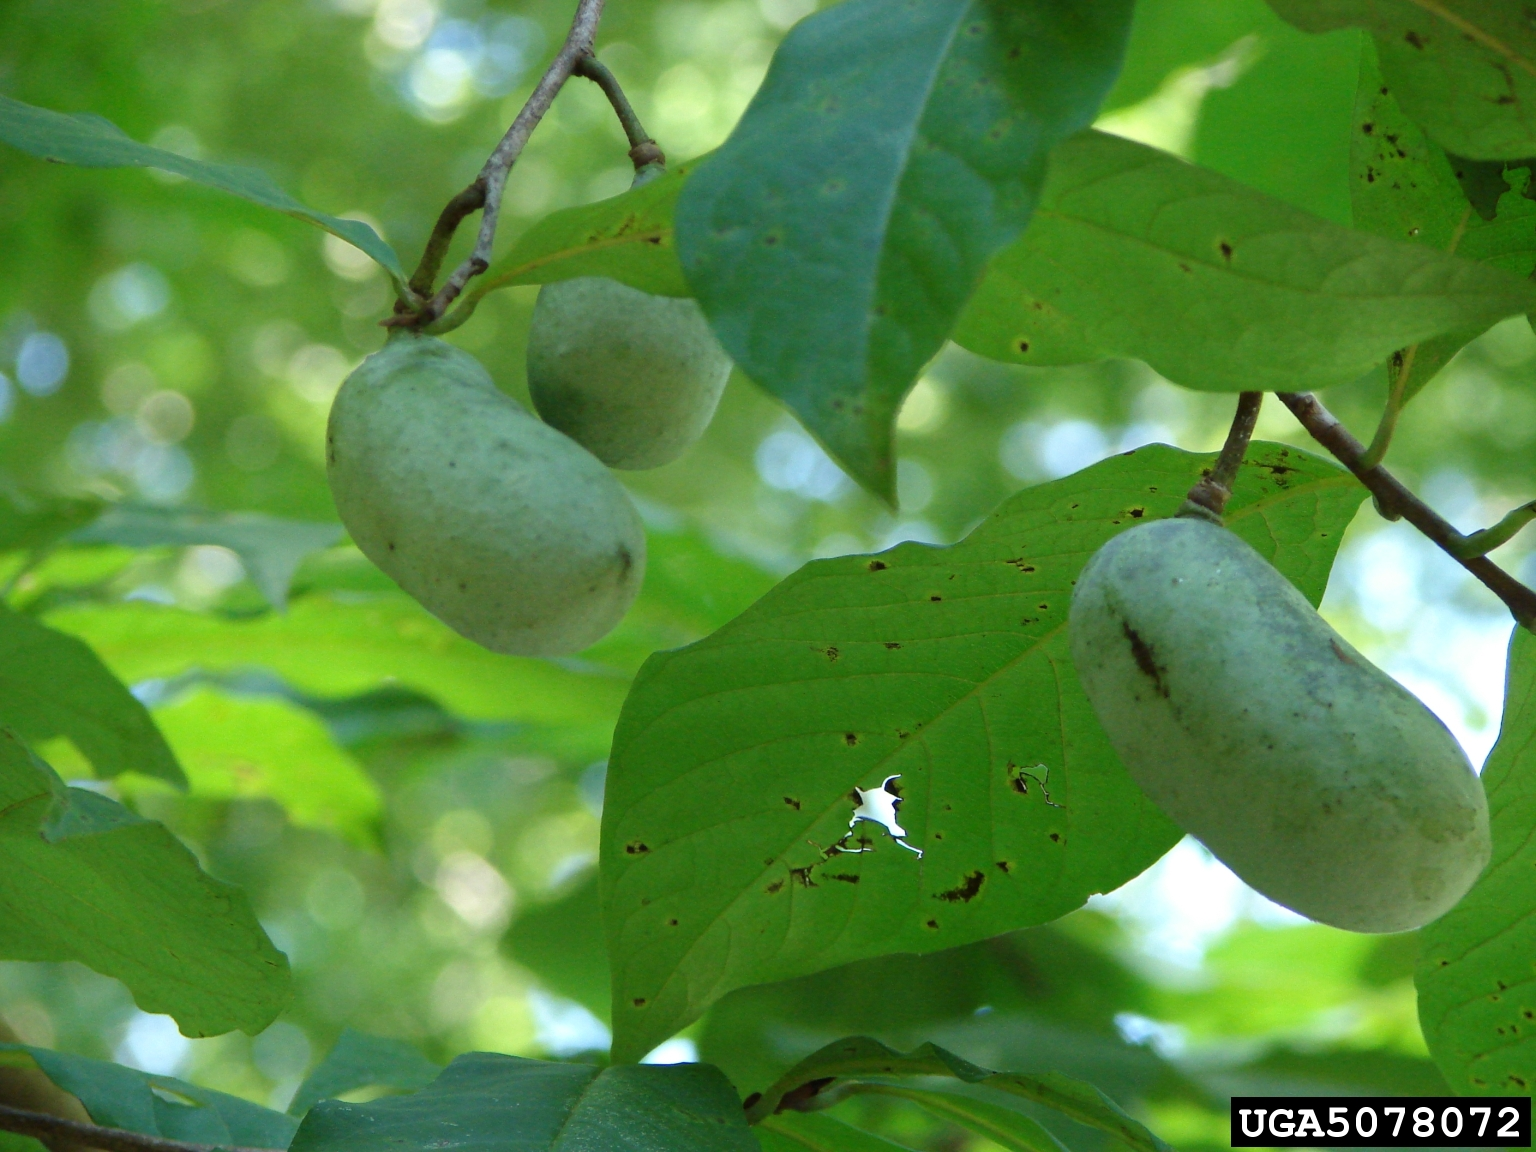 Pawpaw Fruit Troy Evans Great Smoky Mountains National Park Bugwood Org